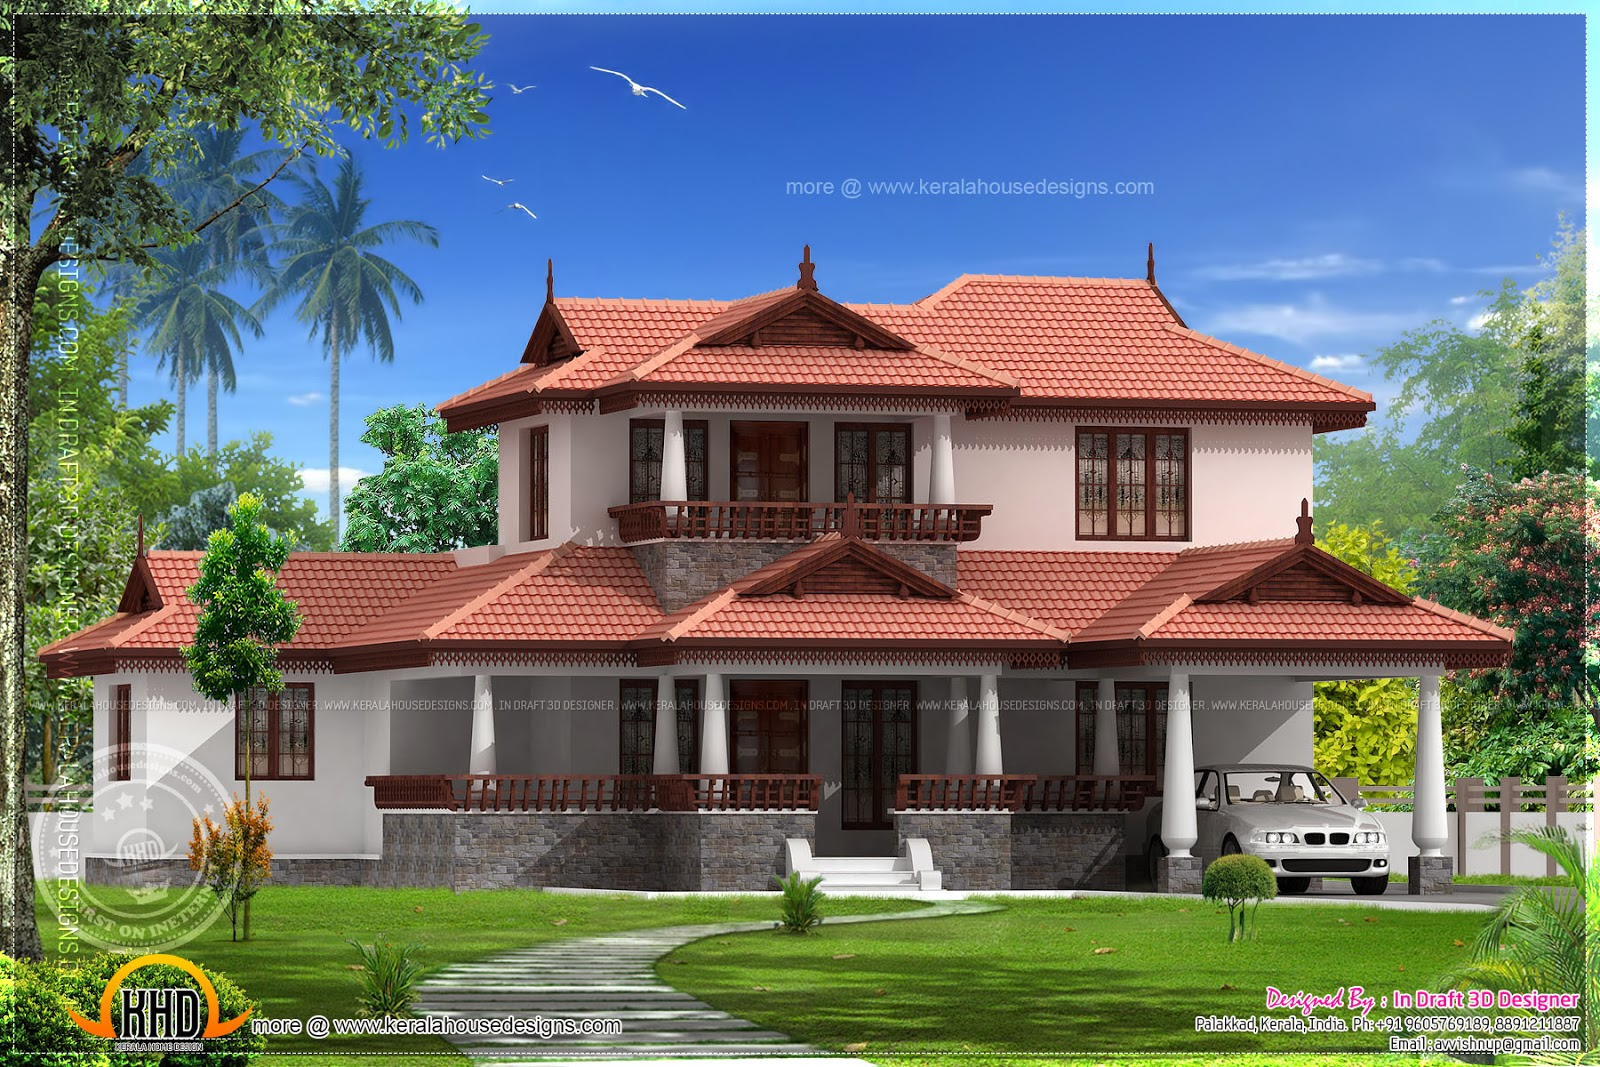 3 bedroom kerala model home elevation kerala home design for Kerala model house photos with details